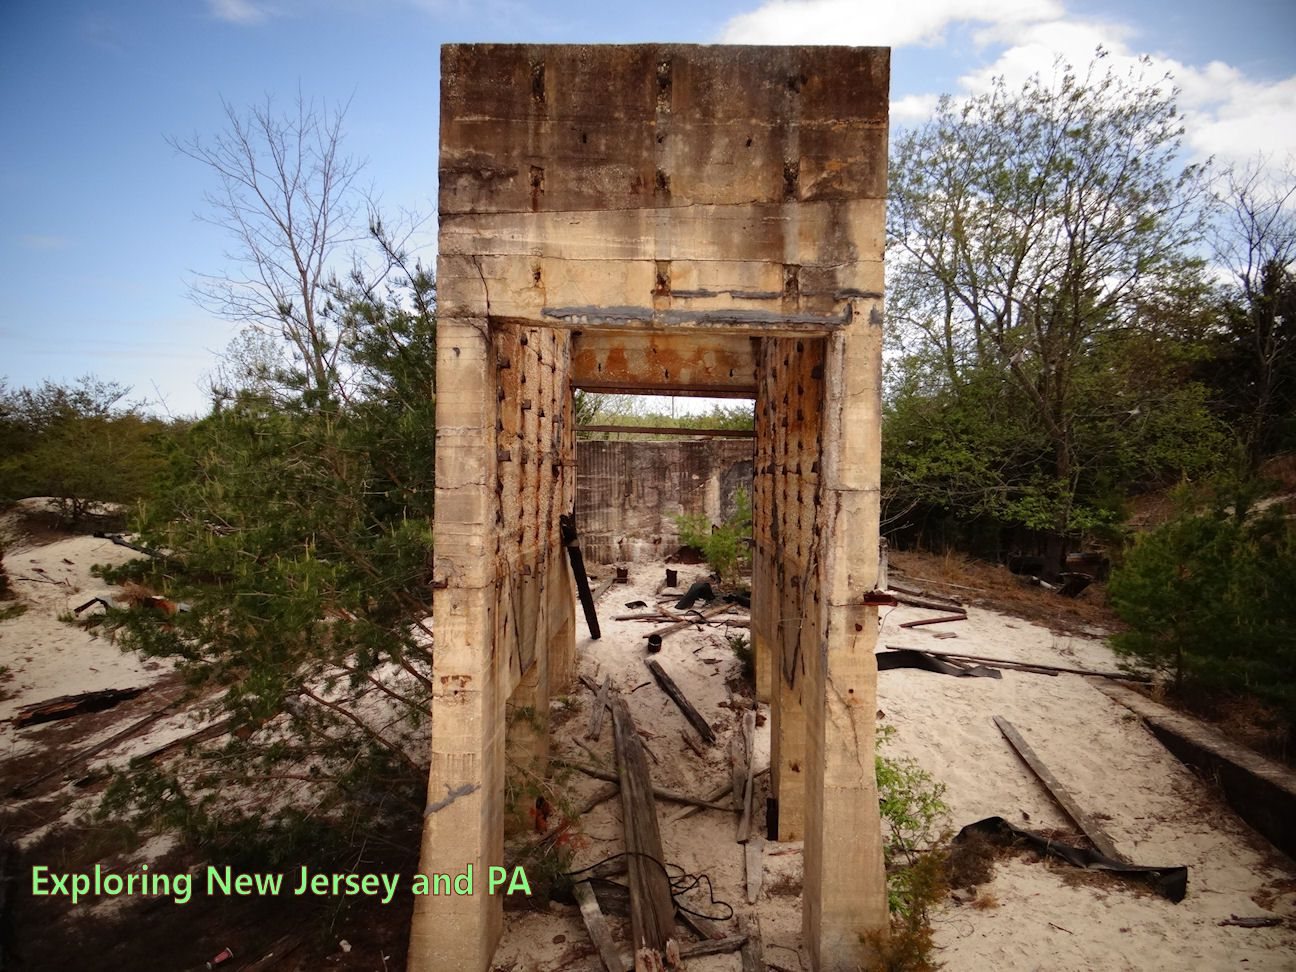 Fries Mills NJ Ruins - check out on FB: Exploring New Jersey and PA